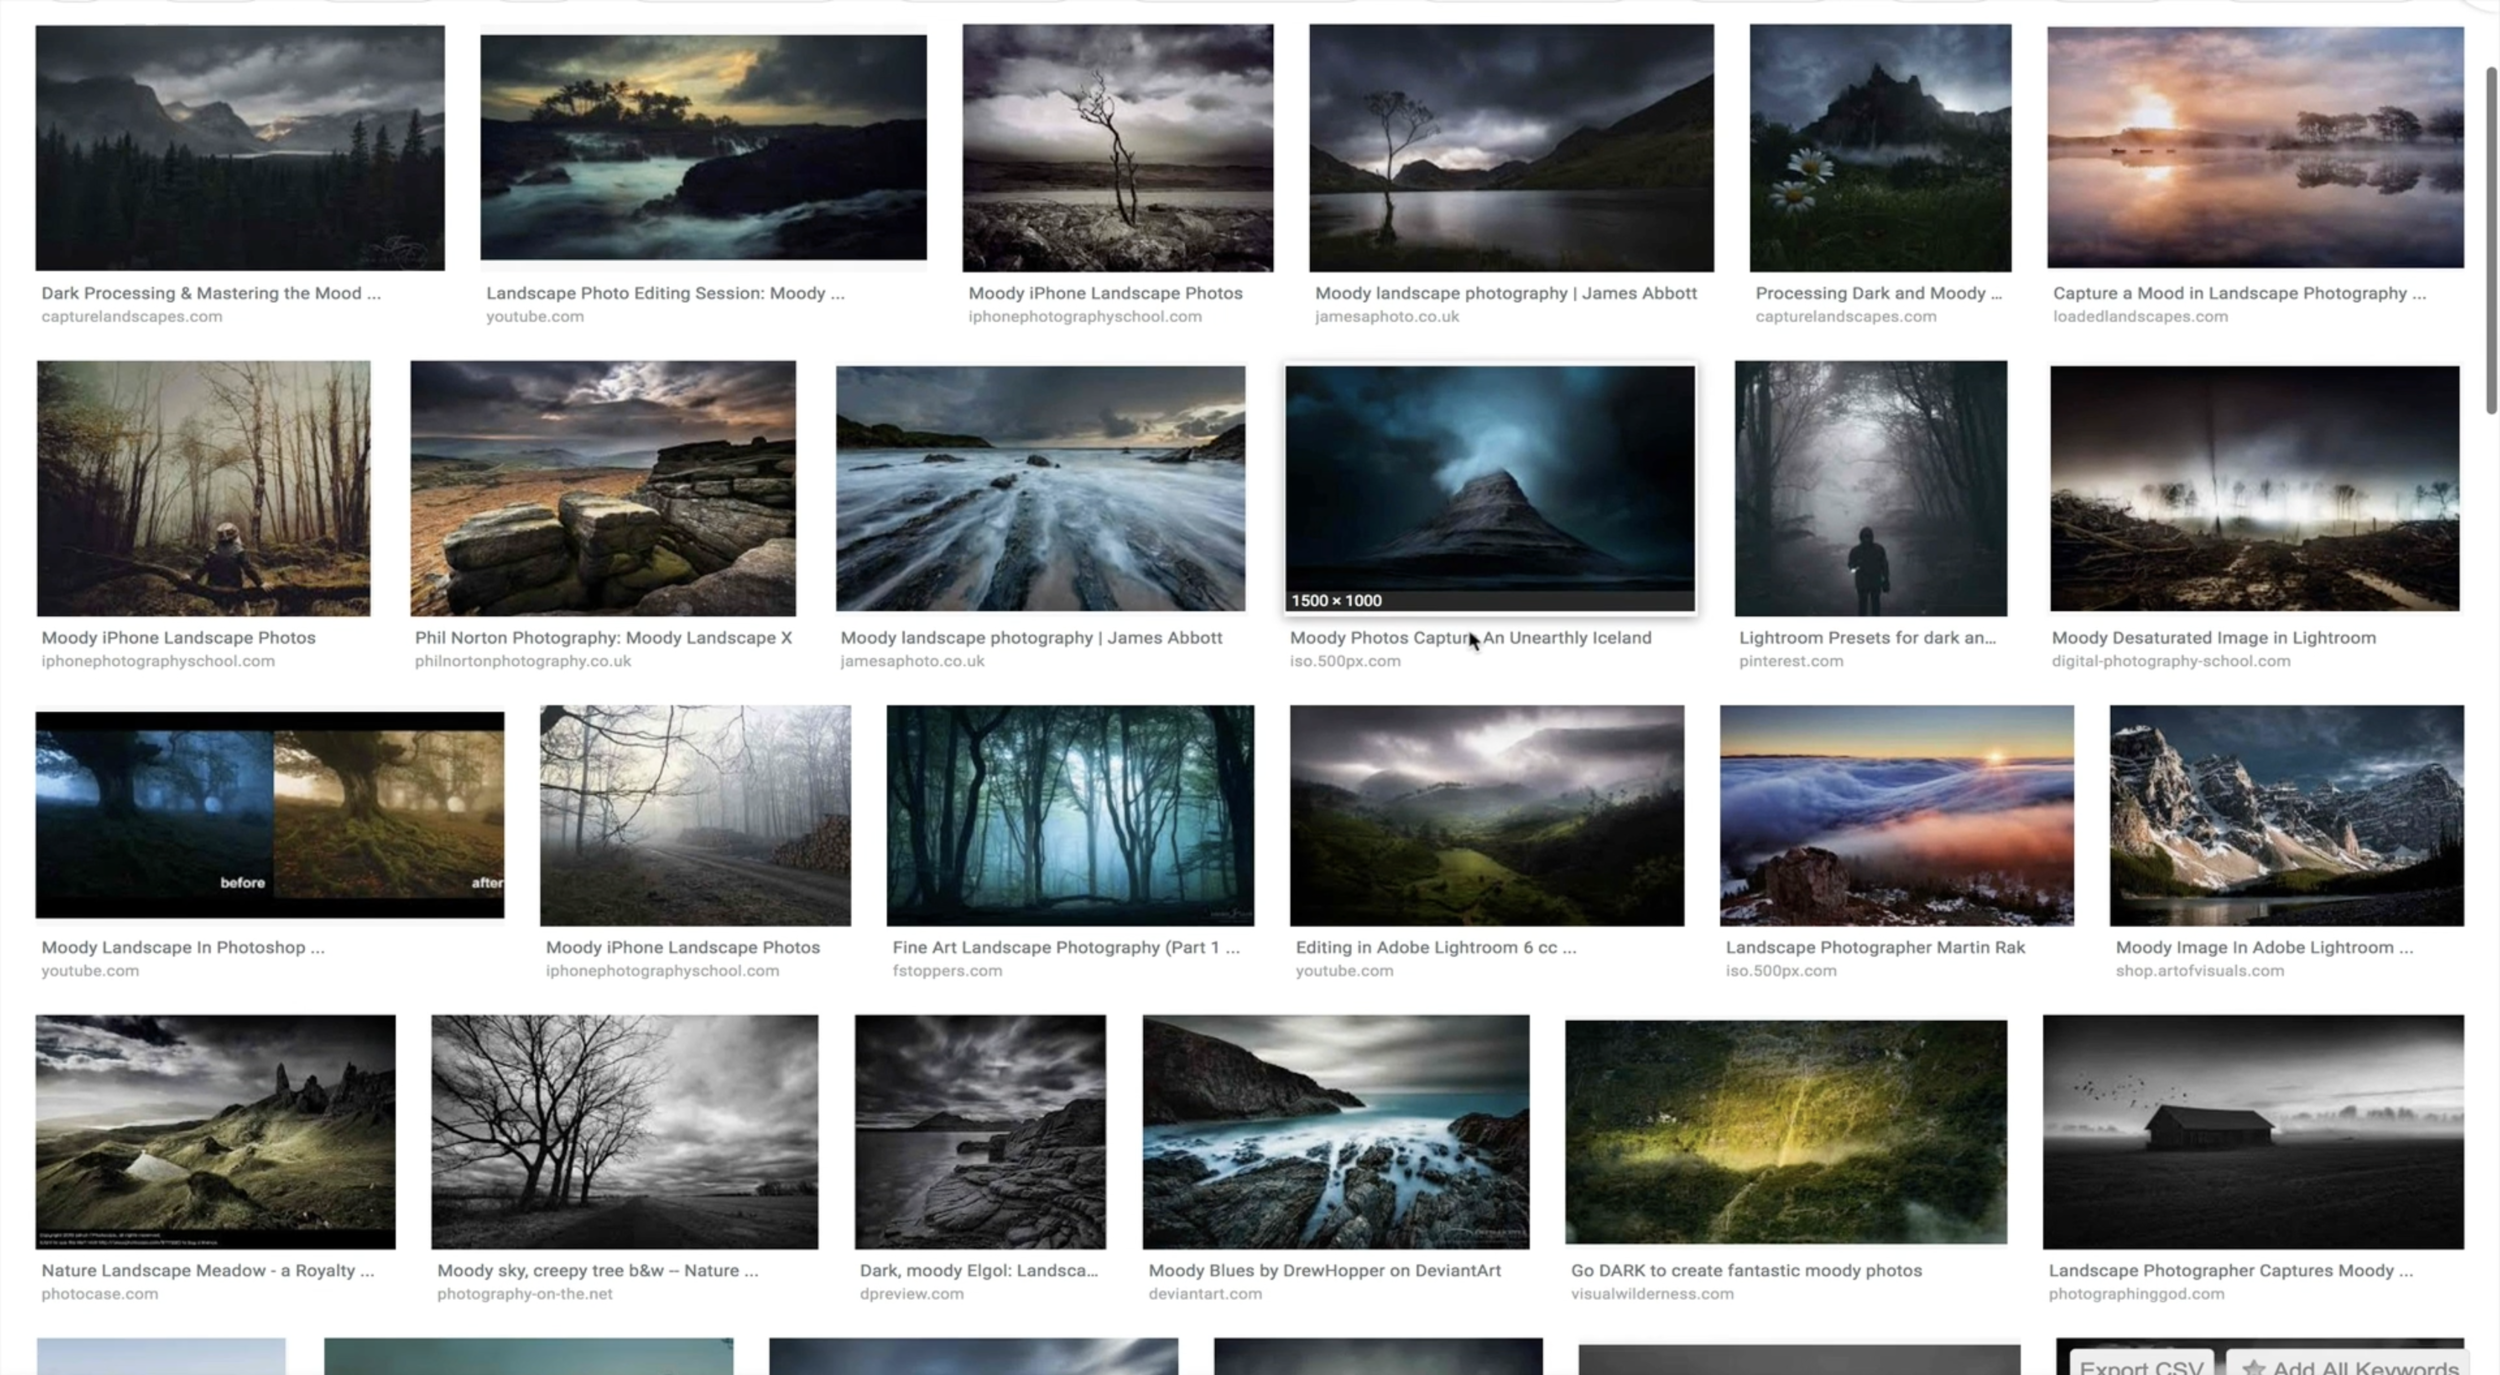 6 Lightroom Tips to Create Moody Landscape Photos 01